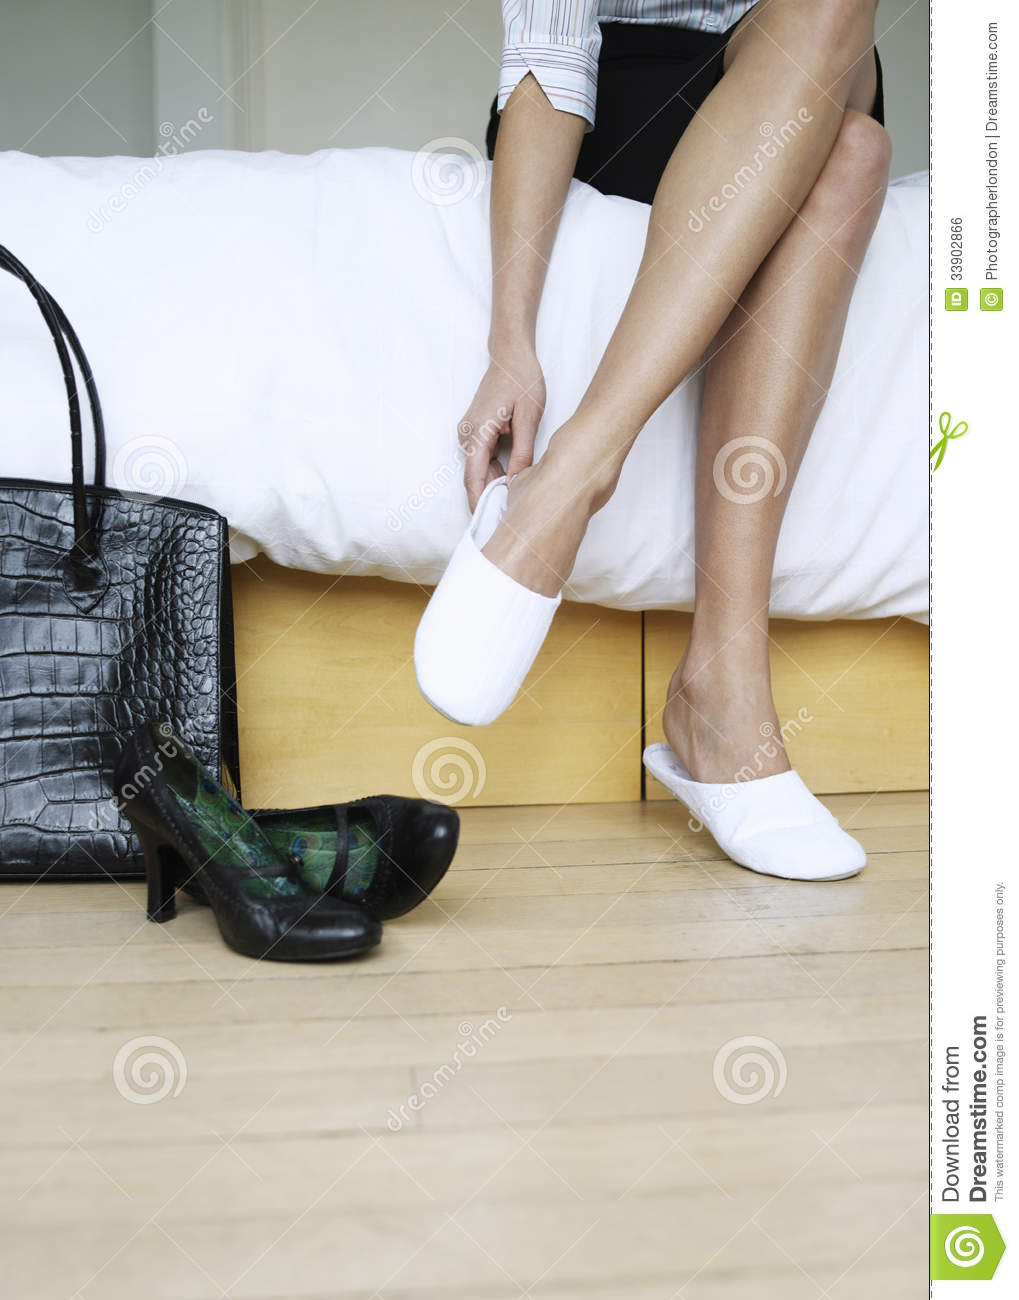 Woman Sitting On Bed Putting On Slippers Stock Photo Image Of Bedroom Female 33902866